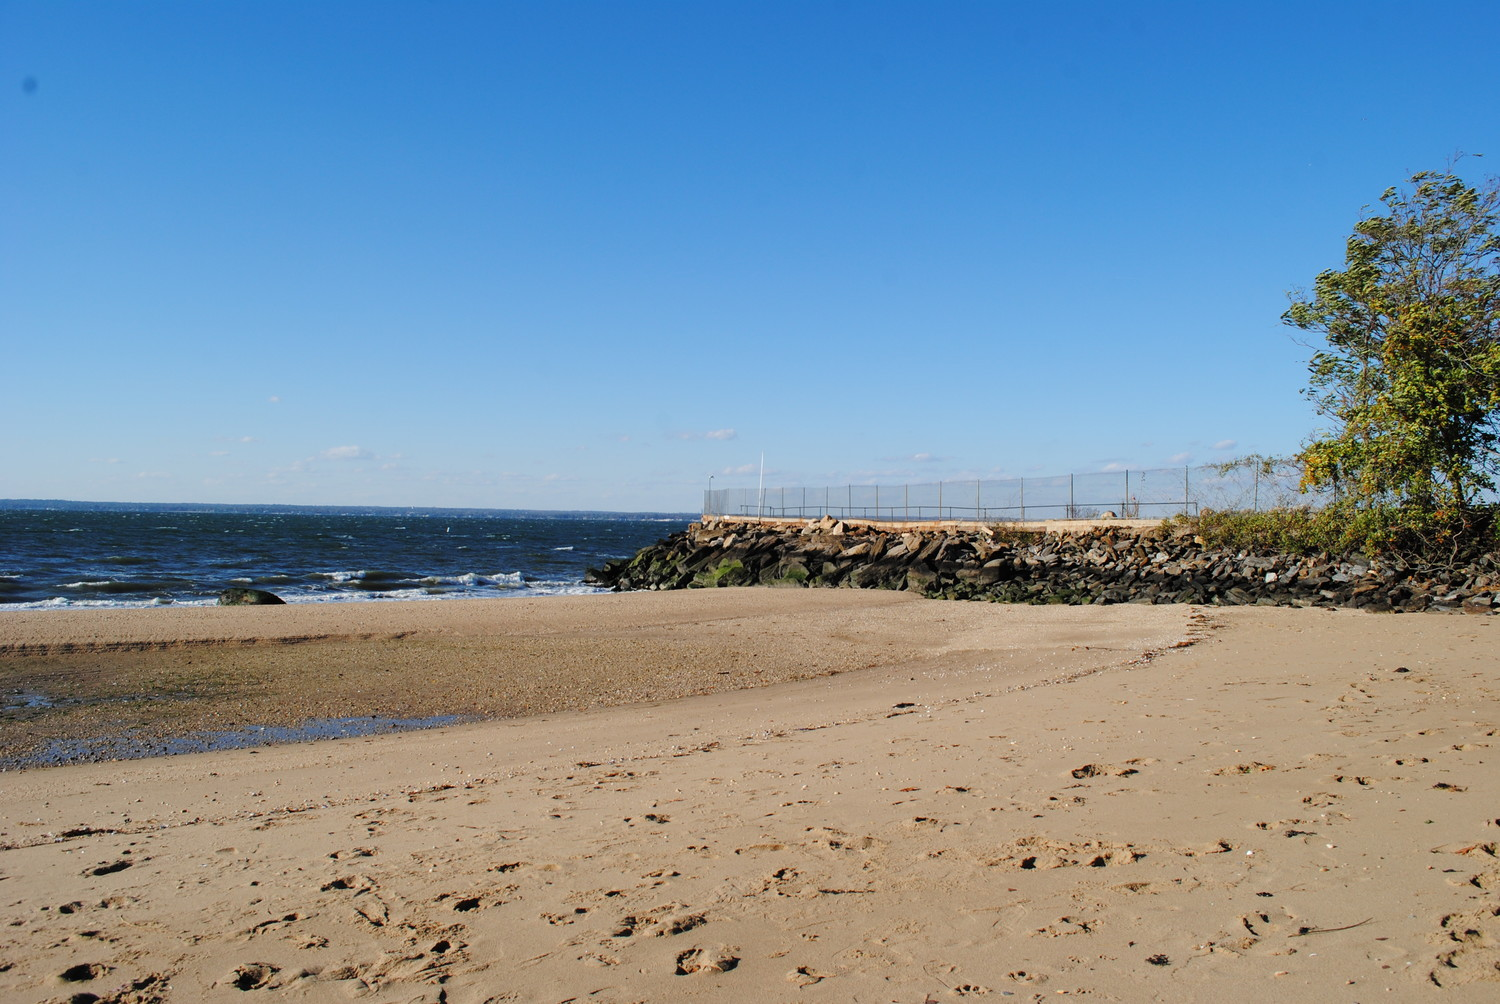 City of Glen Cove officials said they hope that Crescent Beach, which has been closed because of pollution since 2009, can be cleaned up in time for the 2018 summer season.